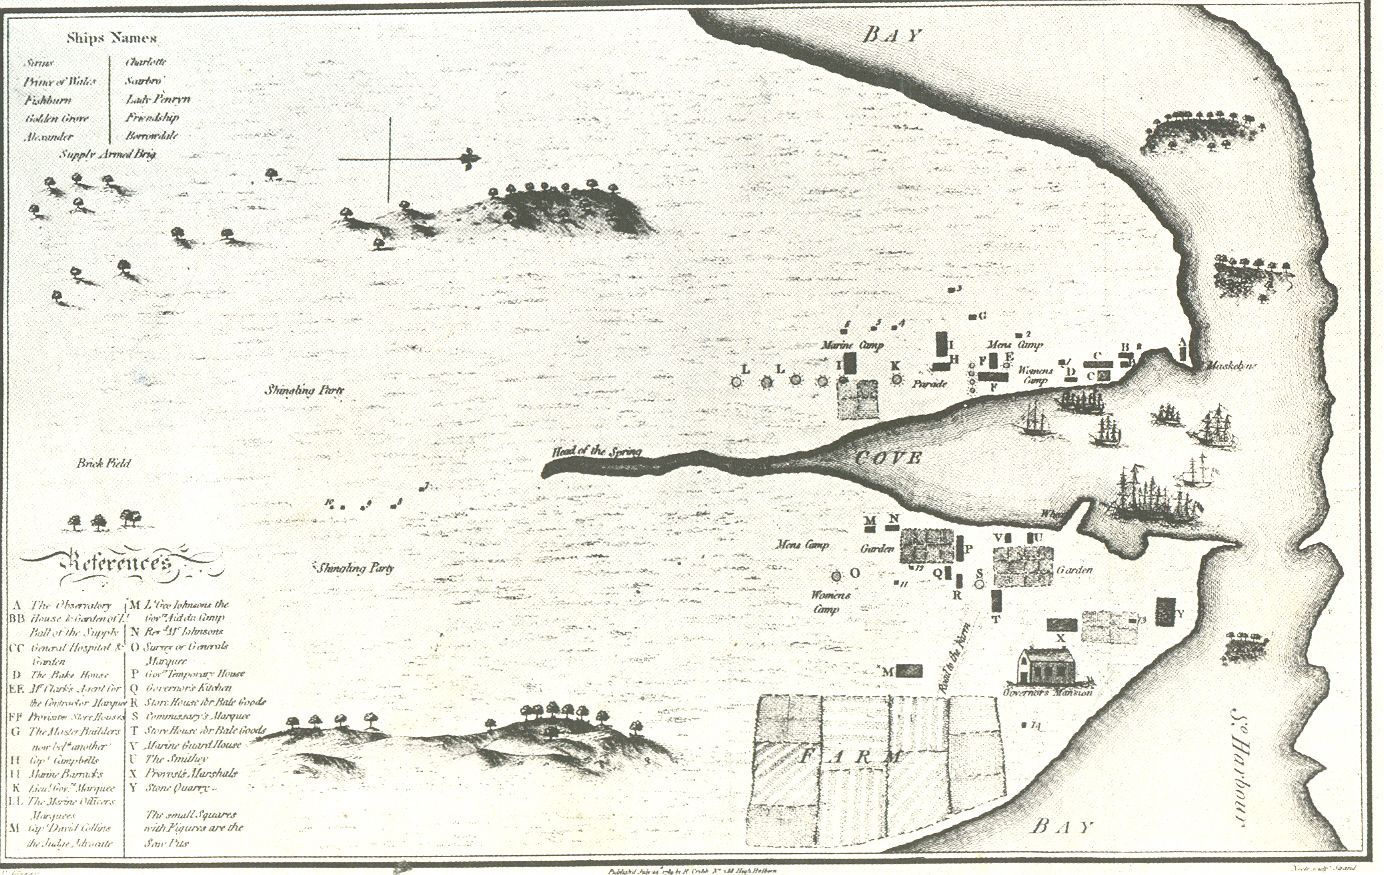 Map of sydney cove published 24 july 1789 our countrys good history fandeluxe Choice Image